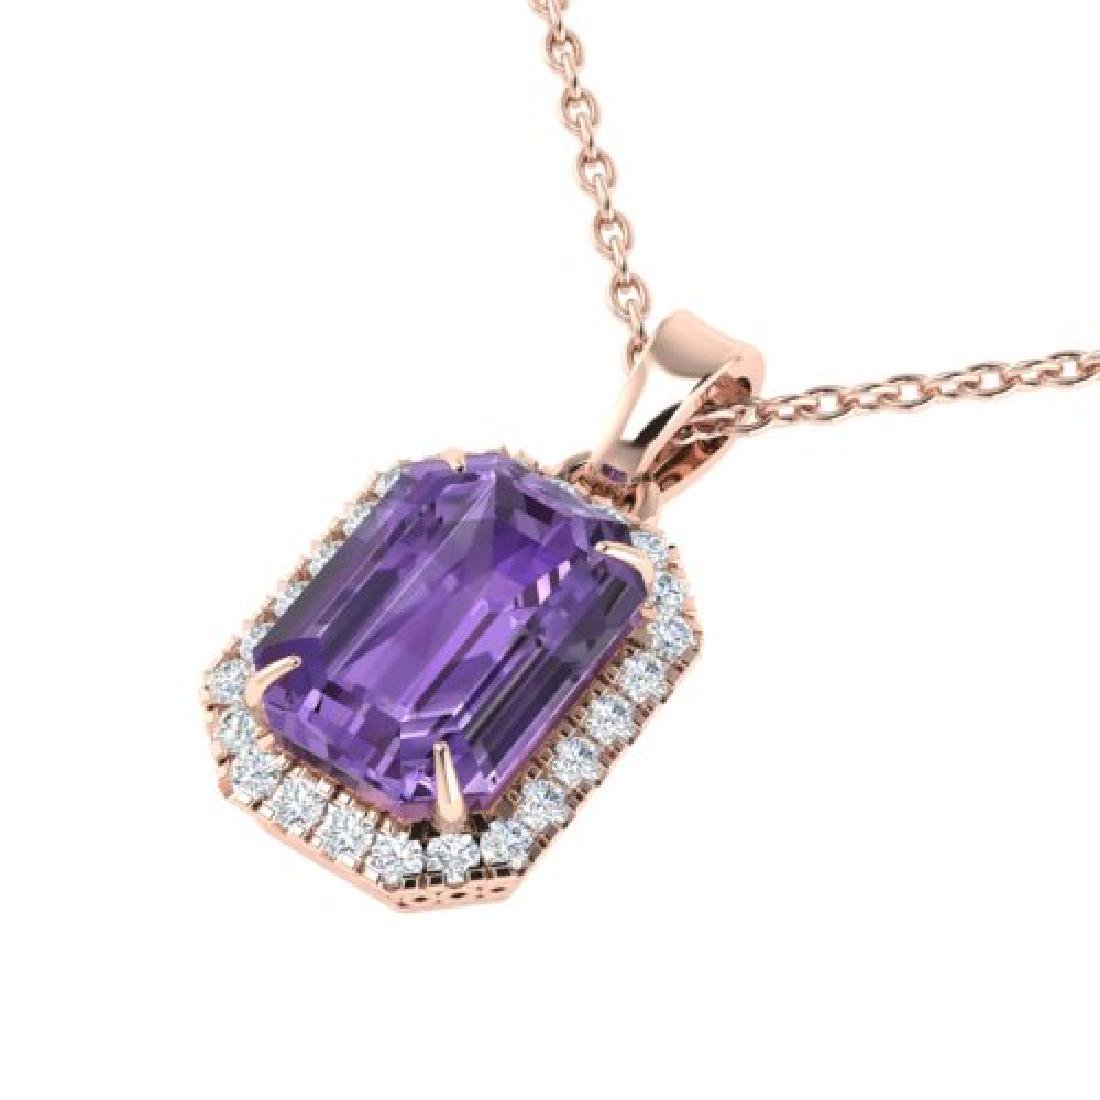 5 CTW Amethyst & Micro Pave VS/SI Diamond Halo Necklace